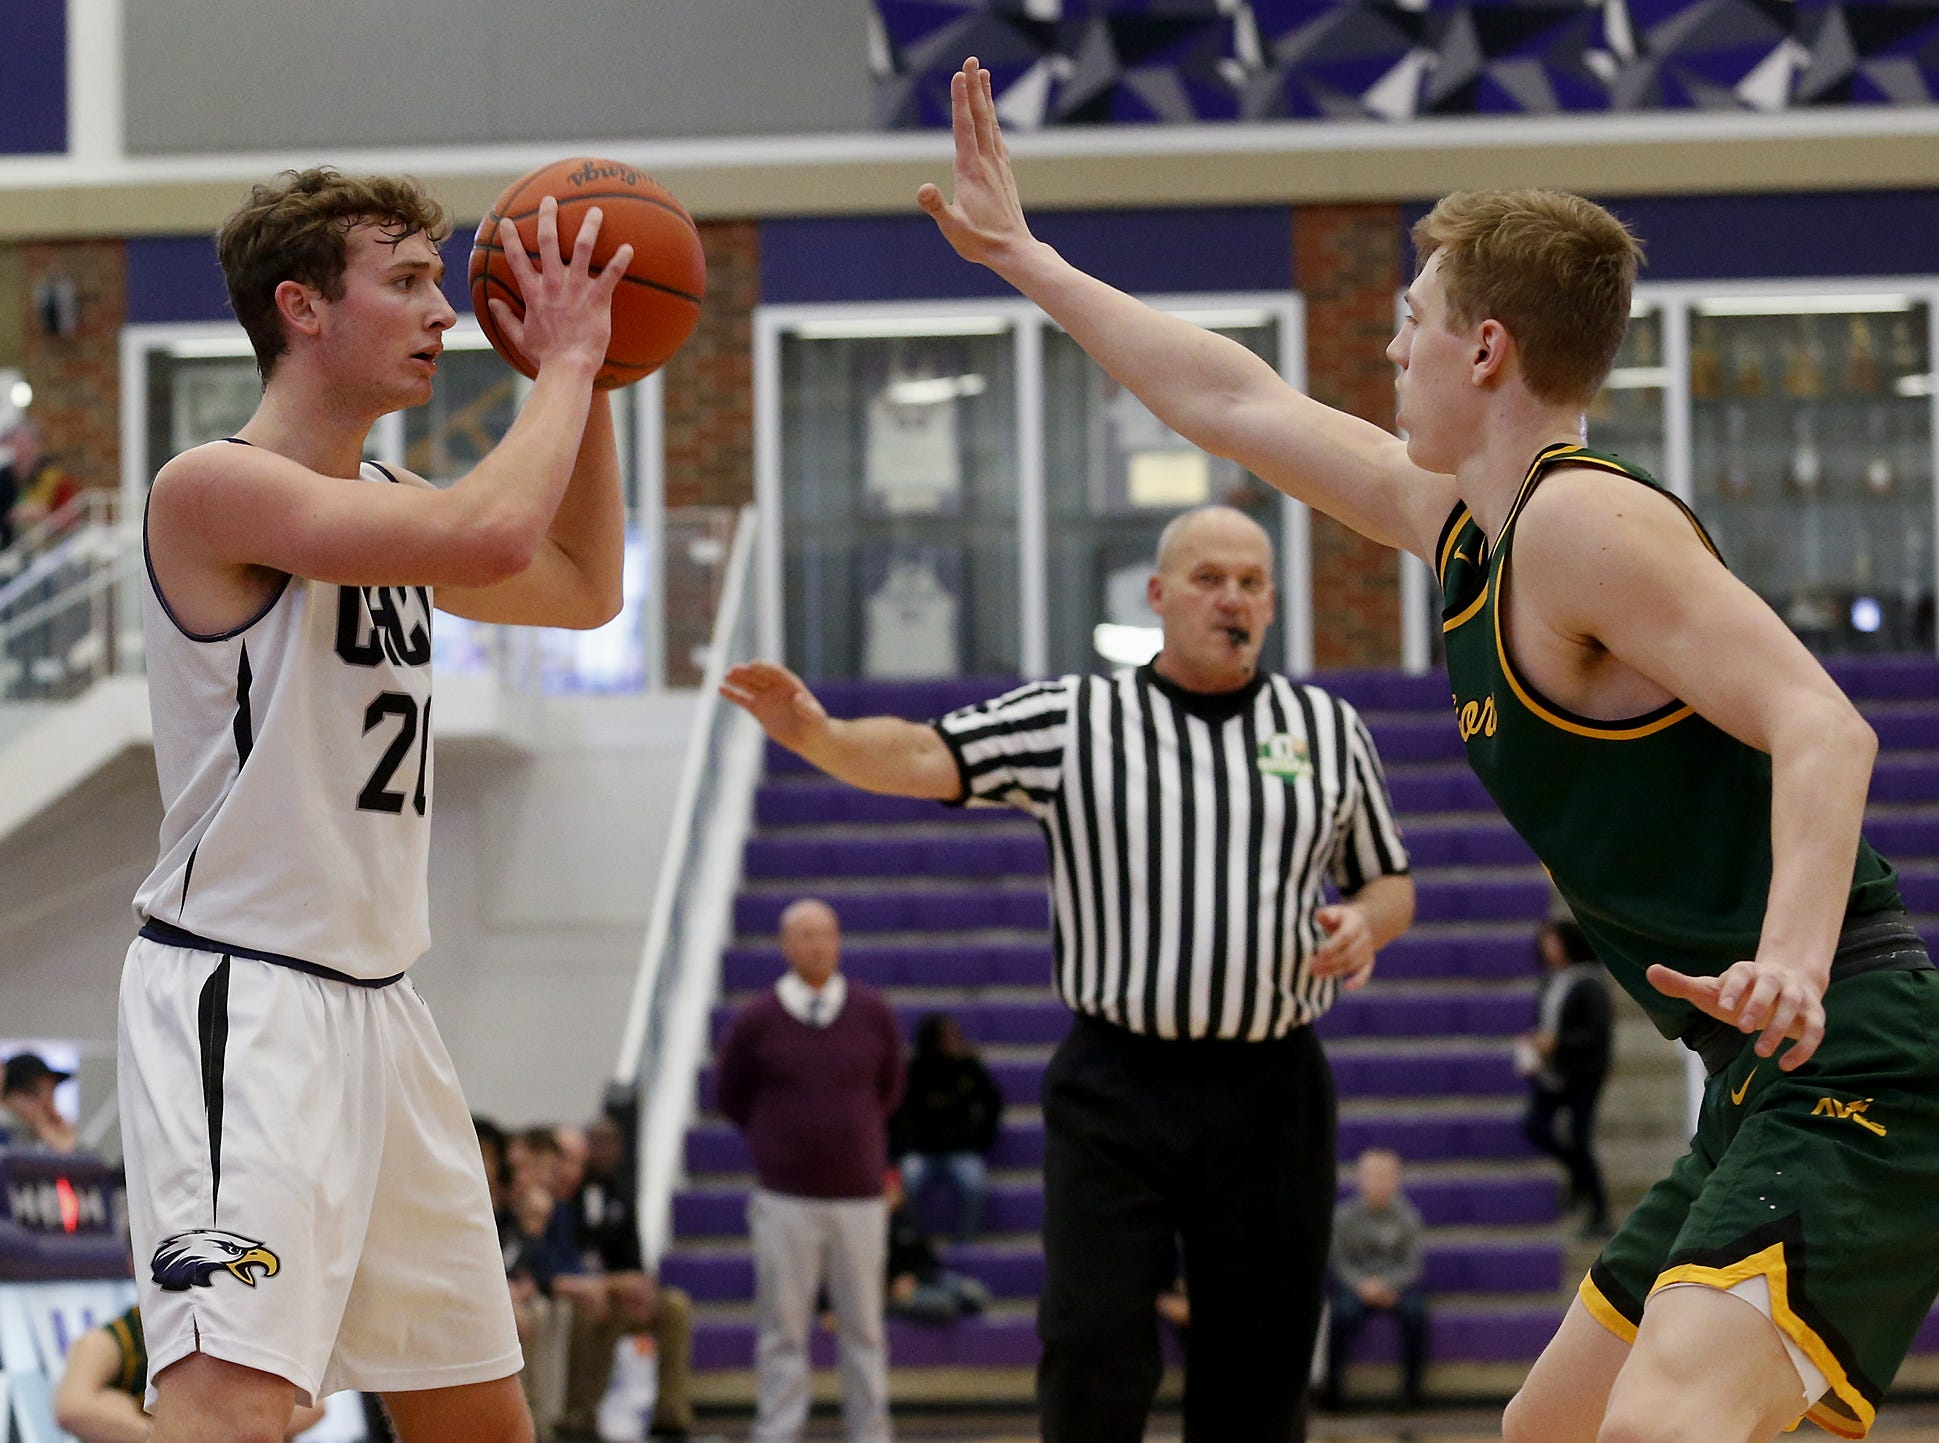 Cincinnati Hills Christian Academy point guard Austin Arthurs is covered by Sycamore guard Ben Yuskewich during the Midwest King Classic at Jerry Lucas Court in Wade E. Miller Arena in Middletown Saturday, Jan. 19, 2019.